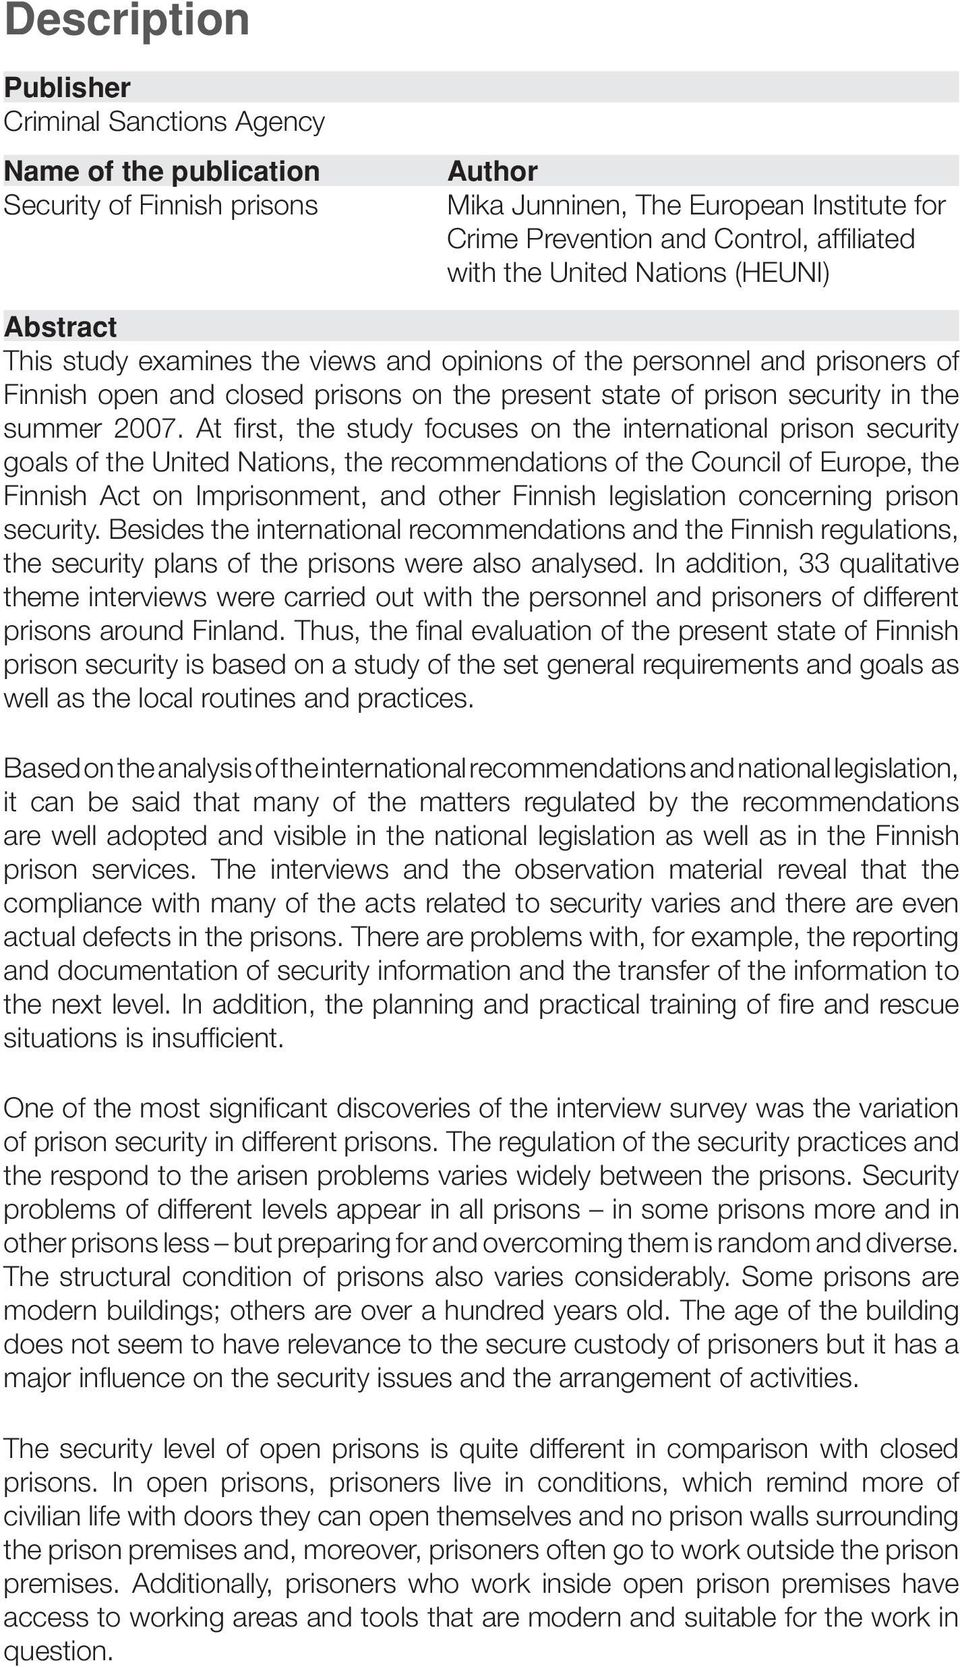 At first, the study focuses on the international prison security goals of the United Nations, the recommendations of the Council of Europe, the Finnish Act on Imprisonment, and other Finnish